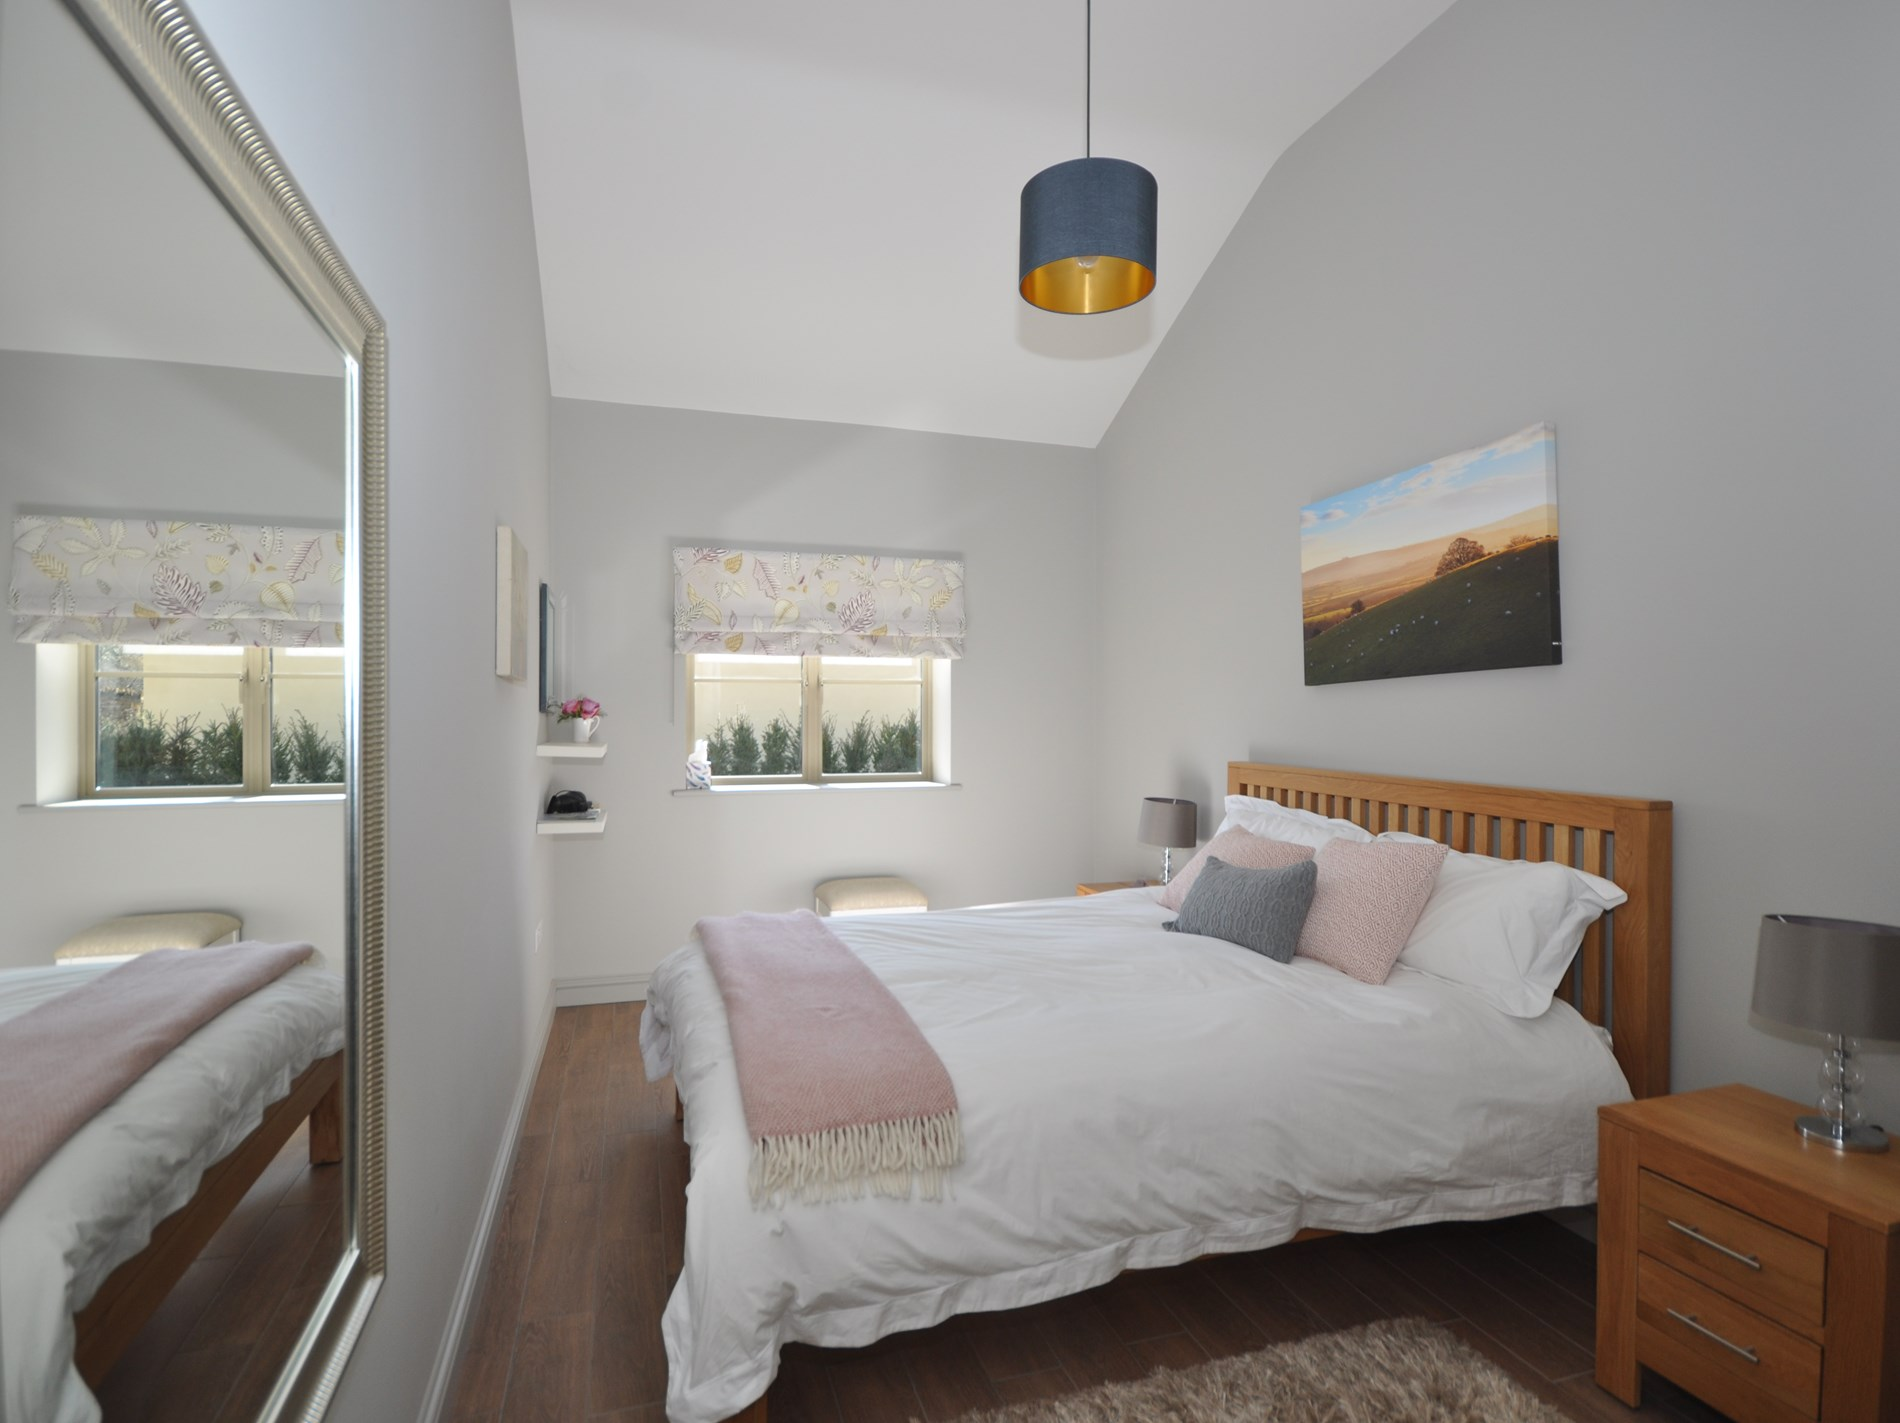 Wake up to bird song in this double bedroom